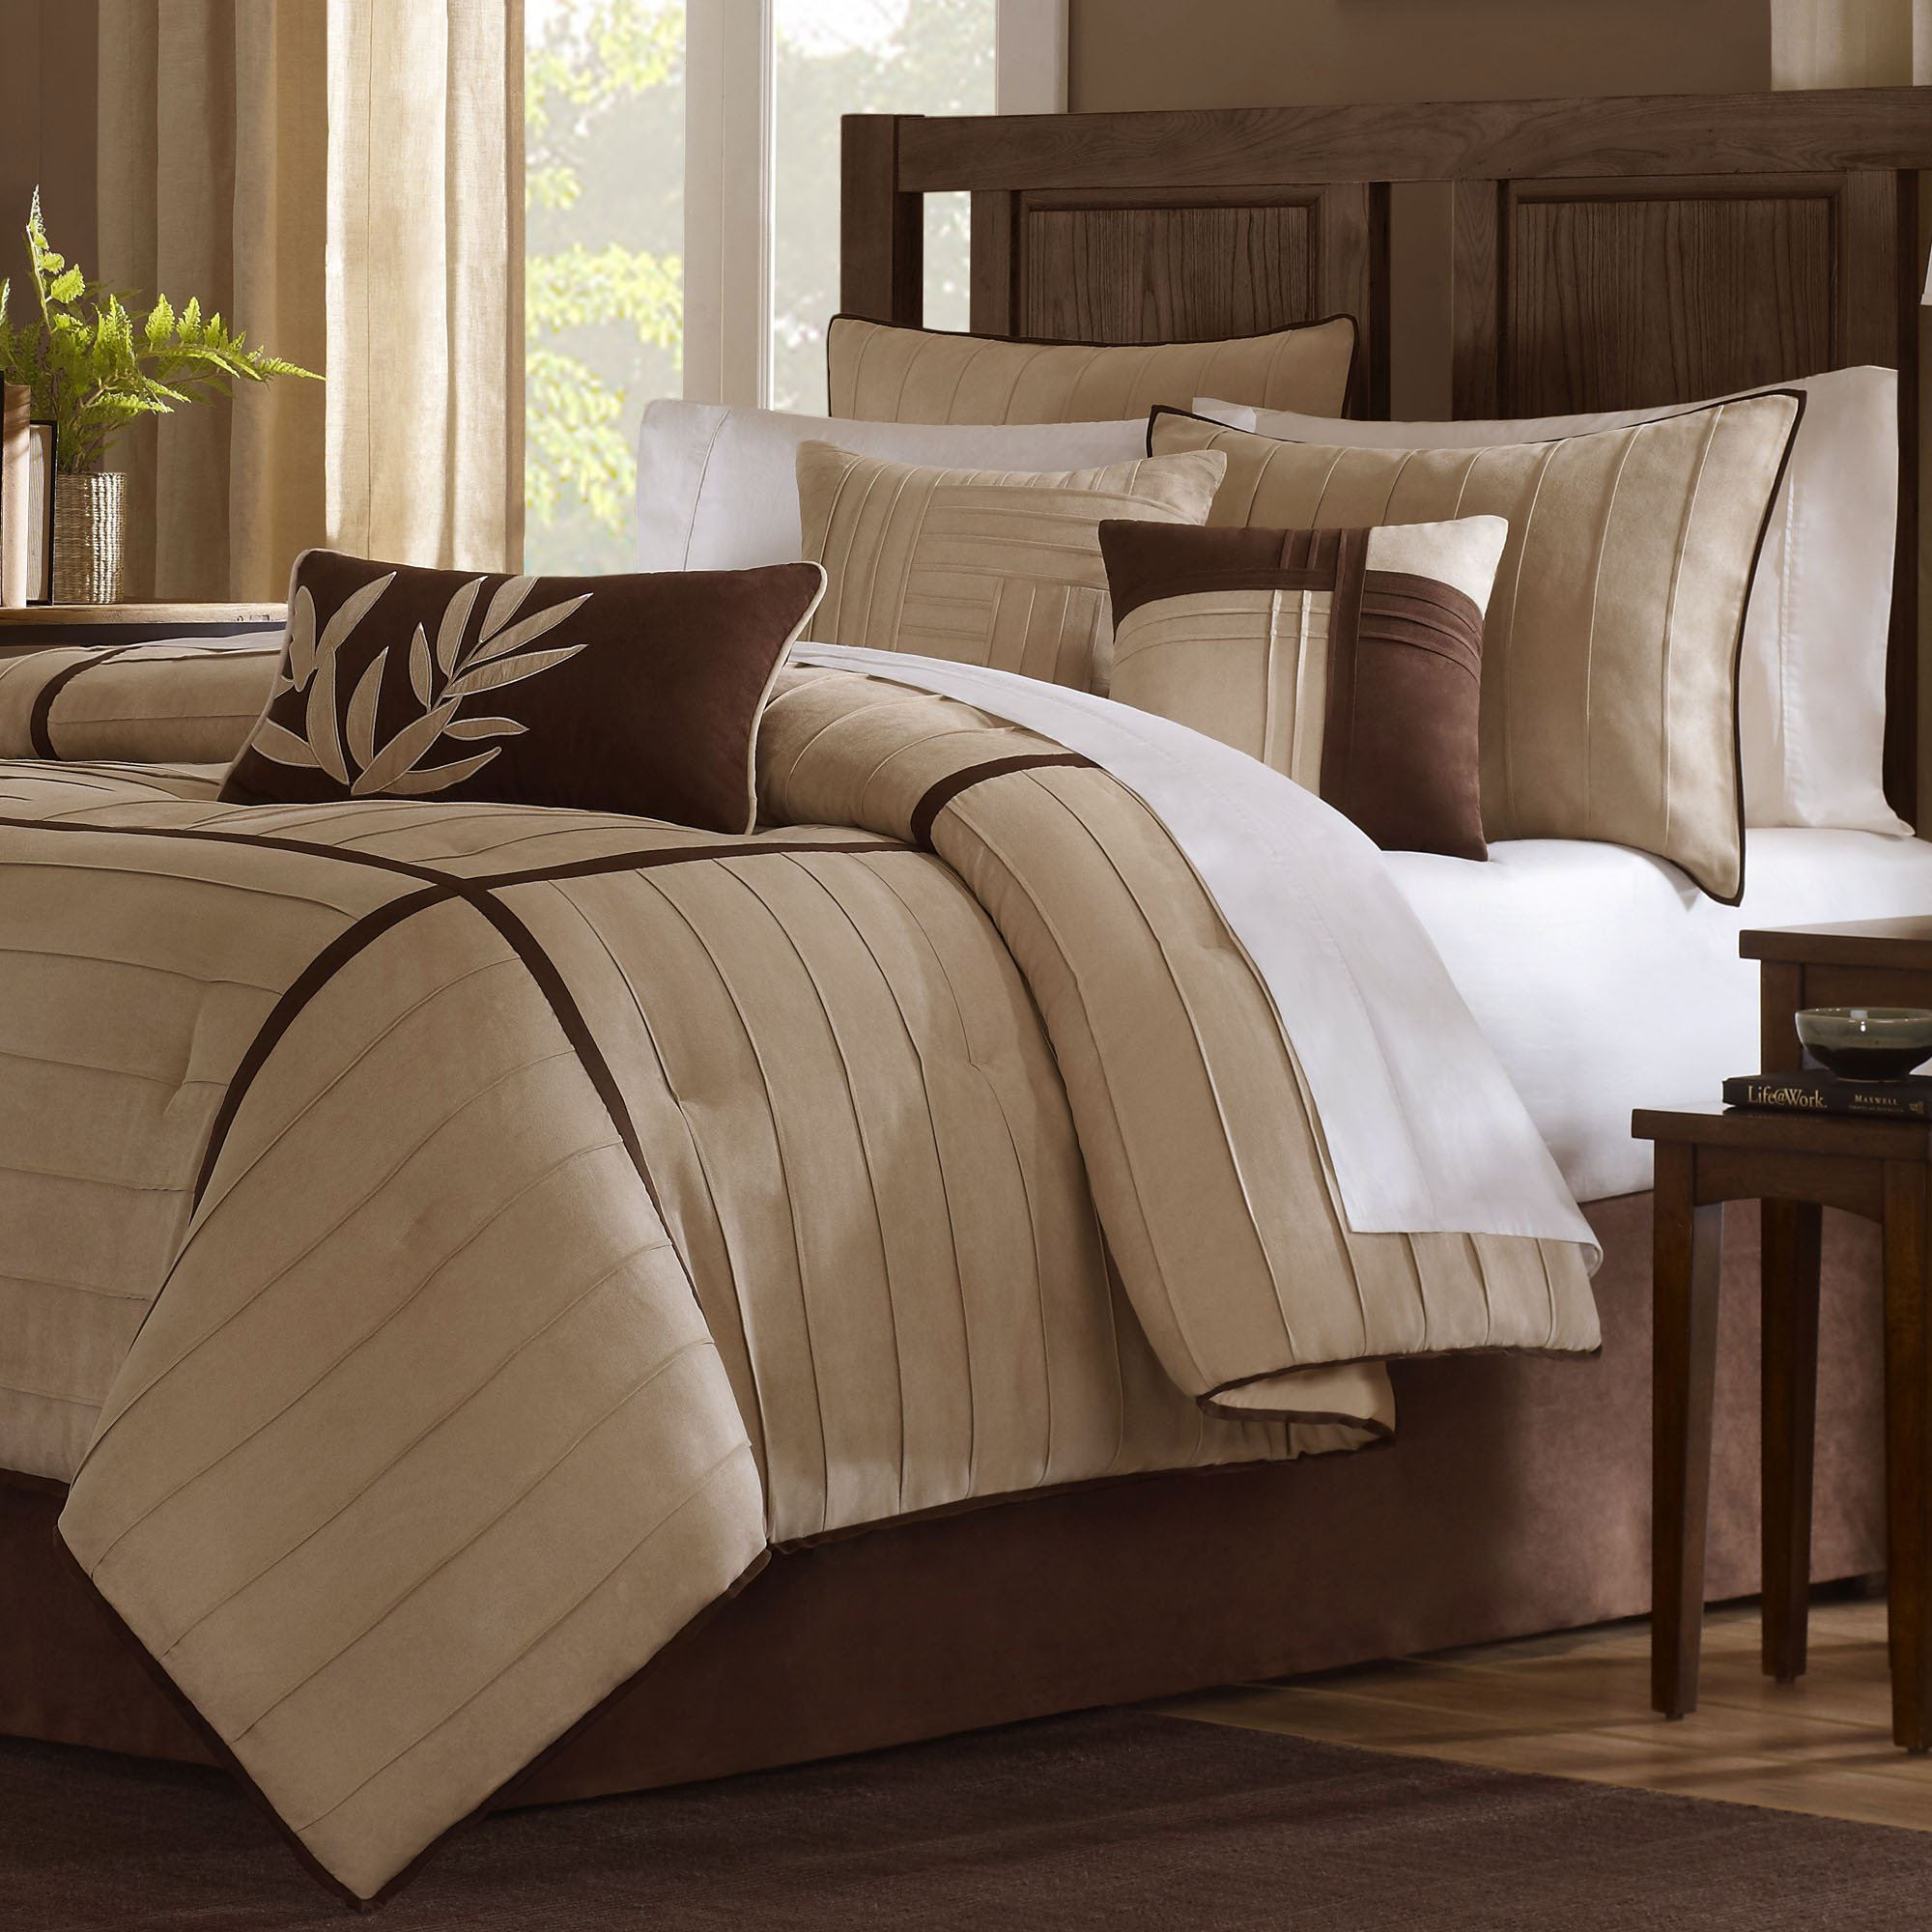 California King Comforter Sets Clearance